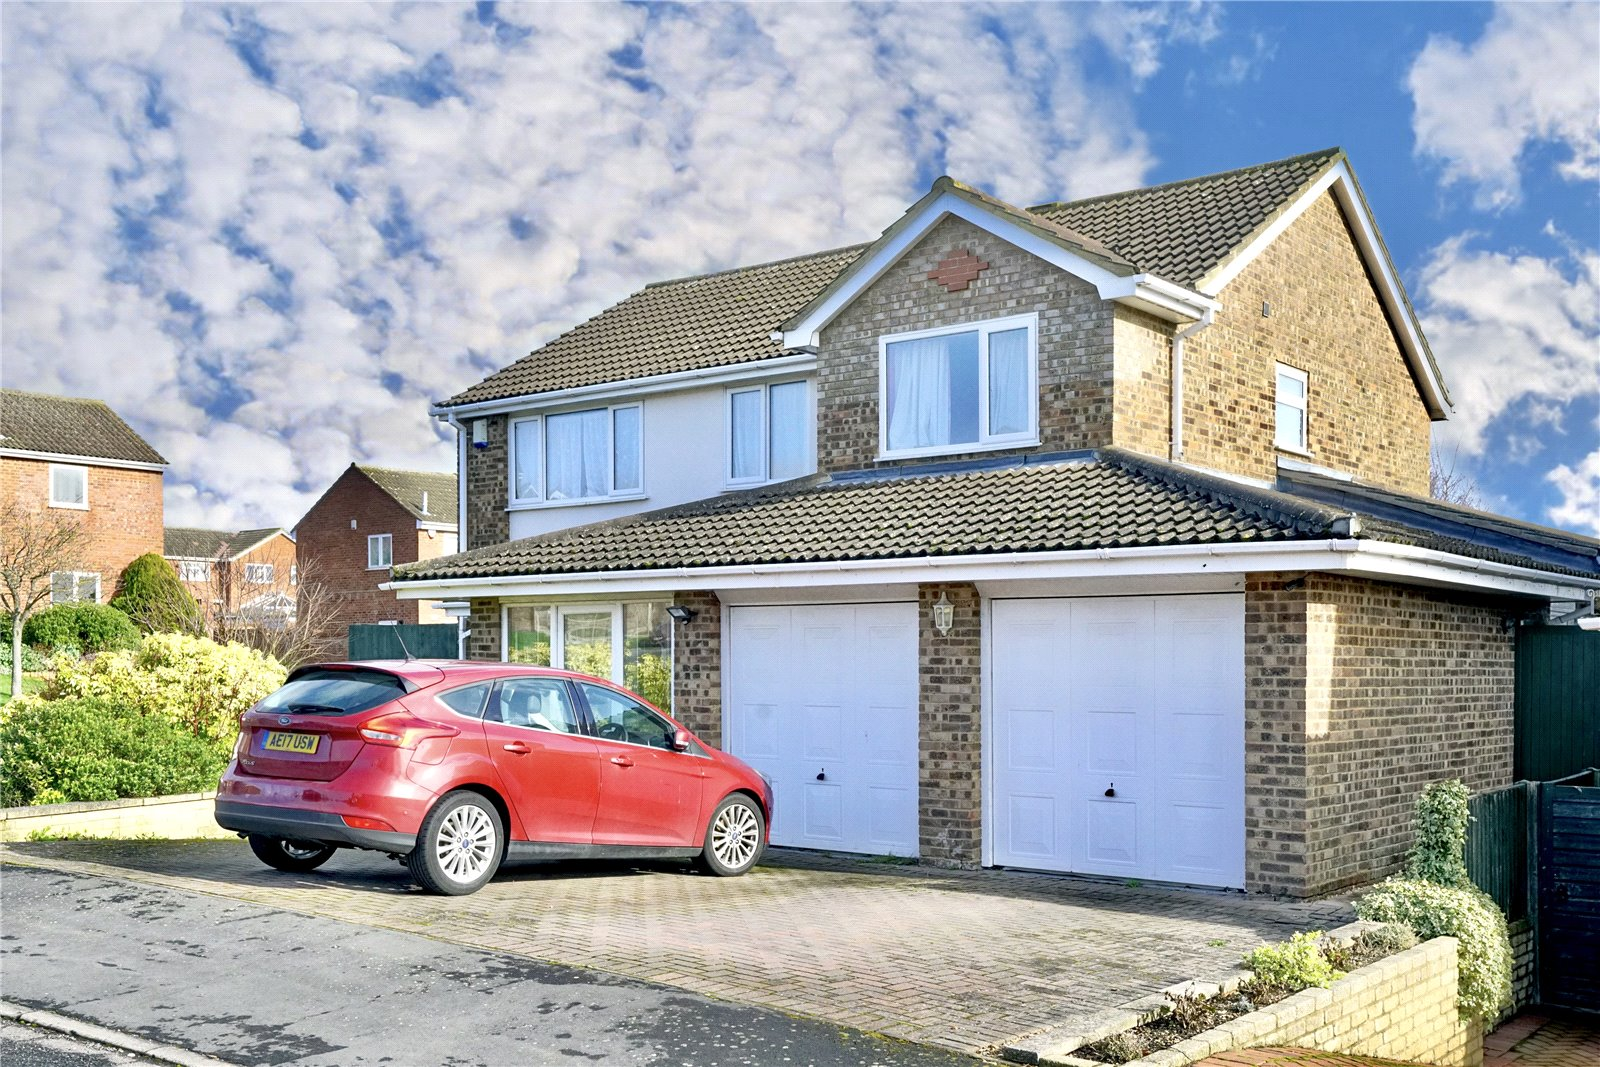 4 bed house for sale in Eaton Ford - Property Image 1